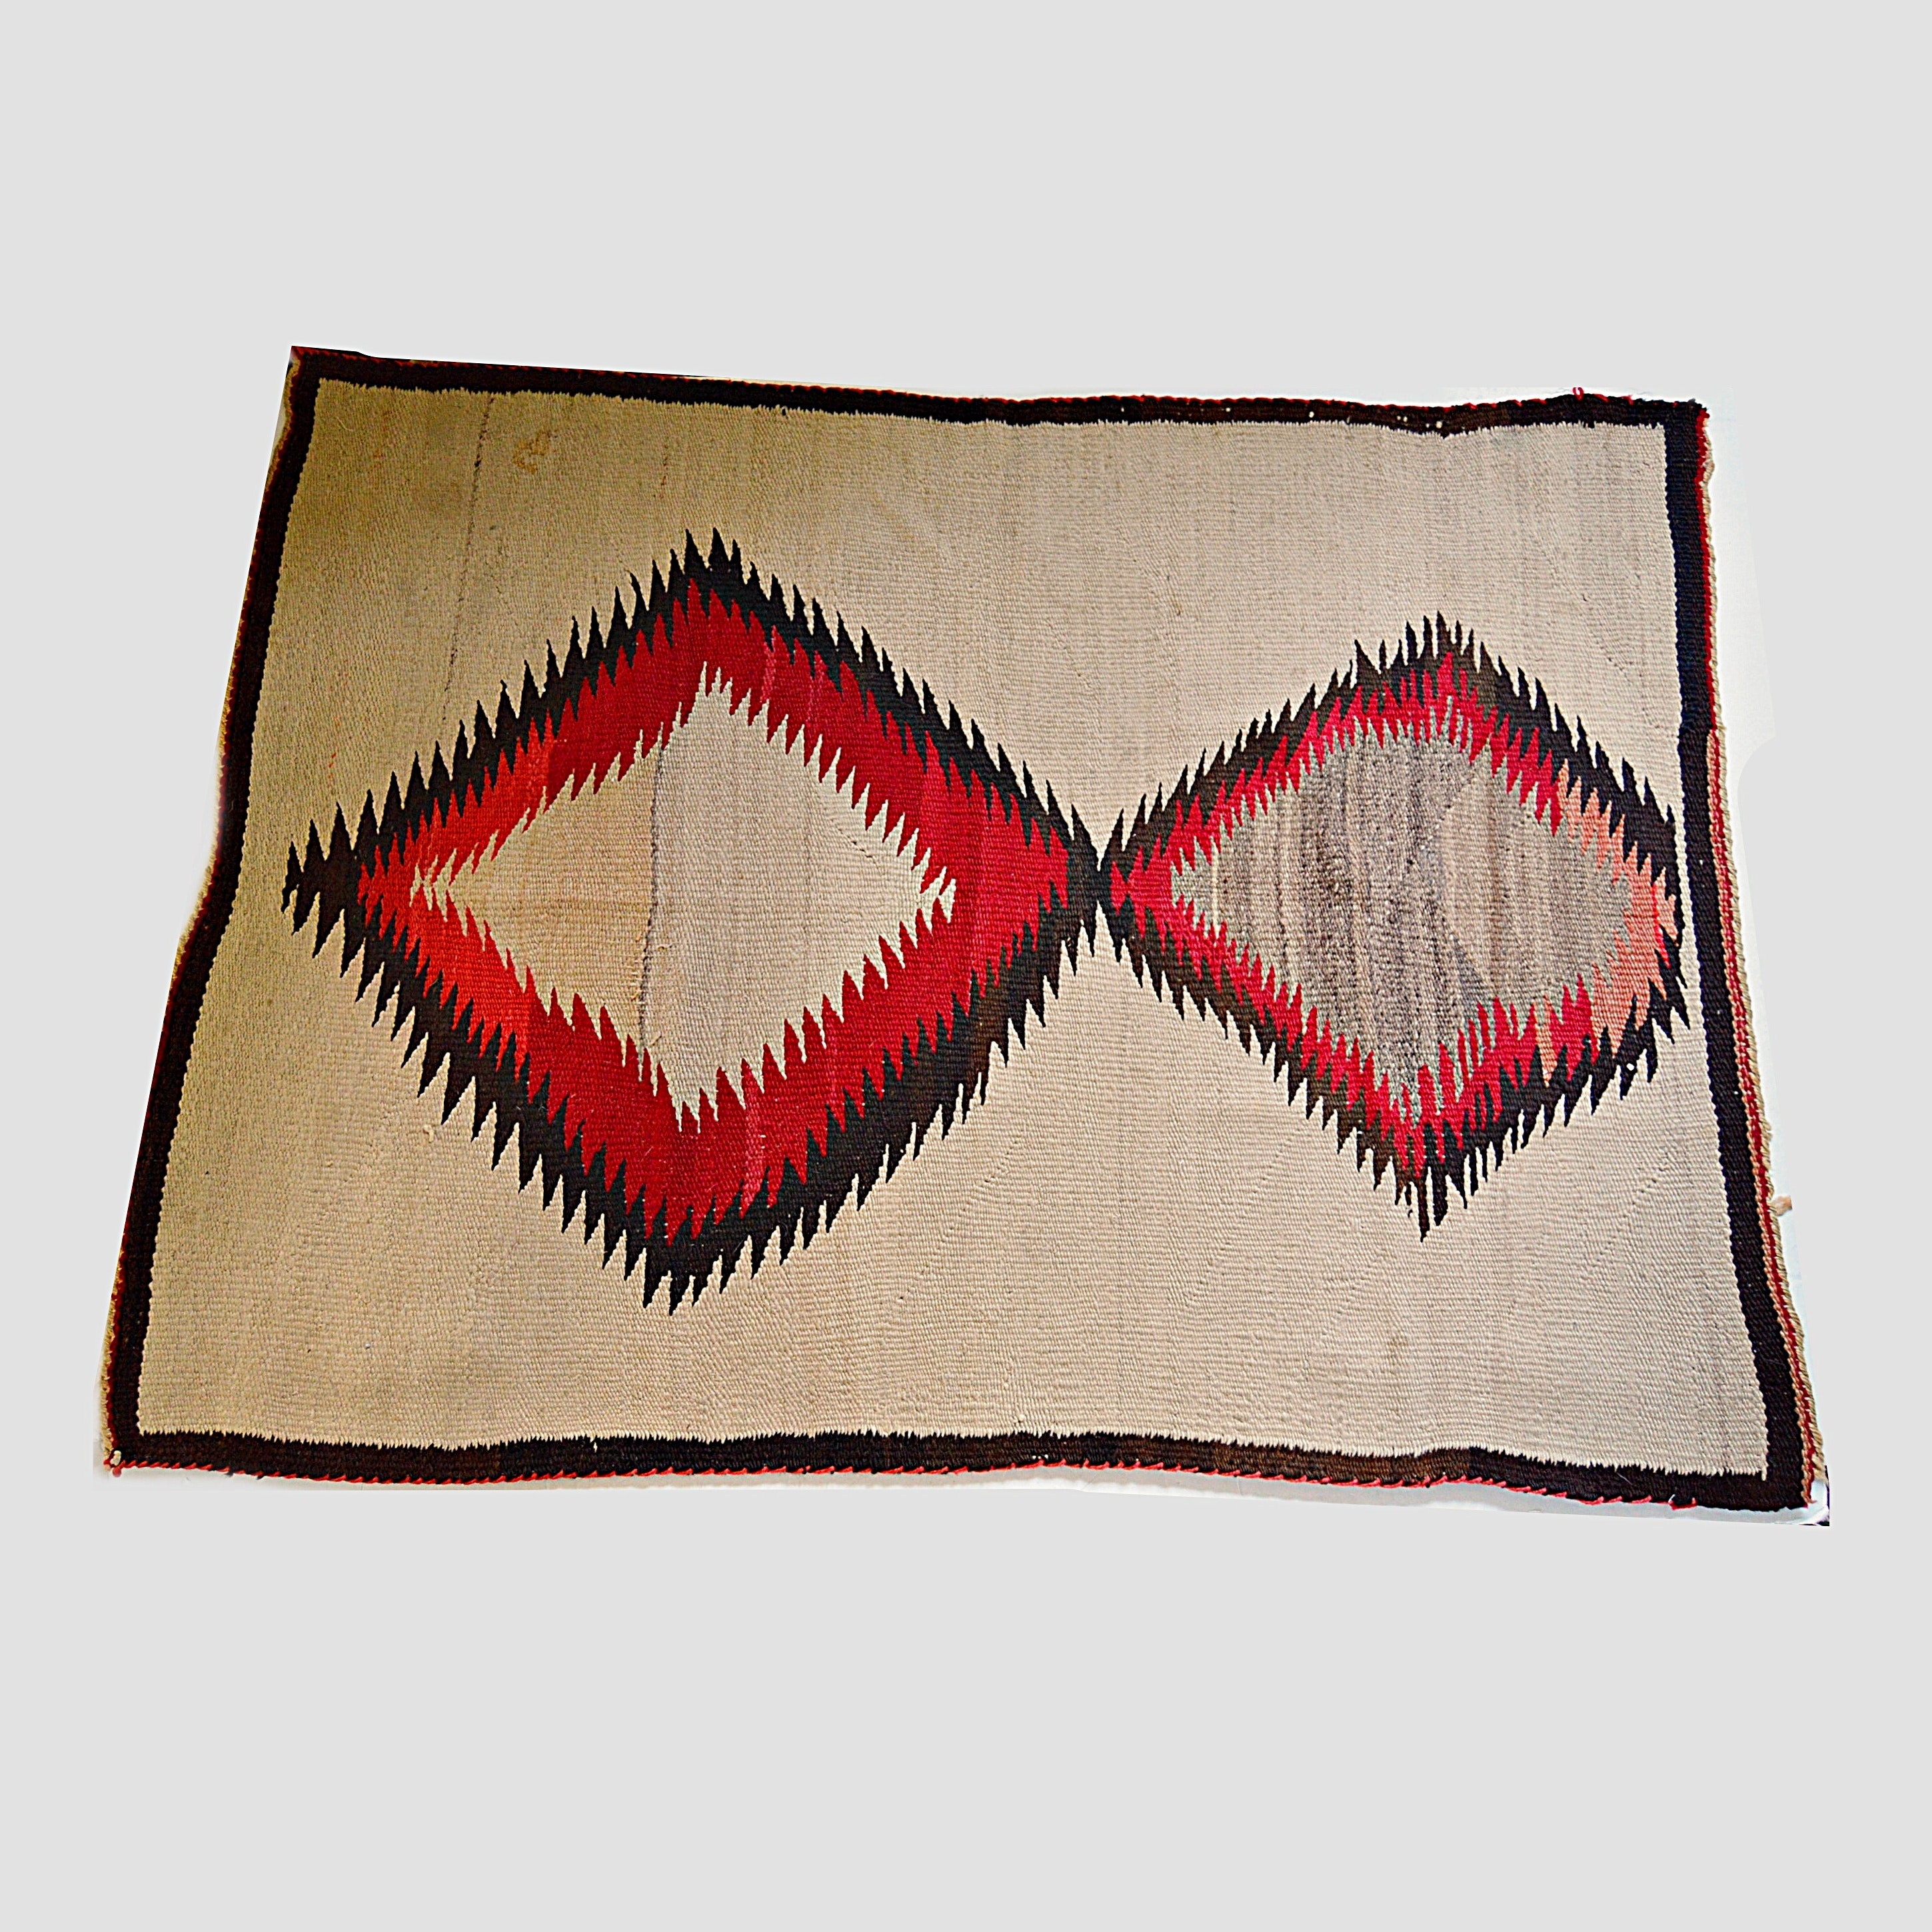 Vintage Handwoven Native American Style Wool Area Rug